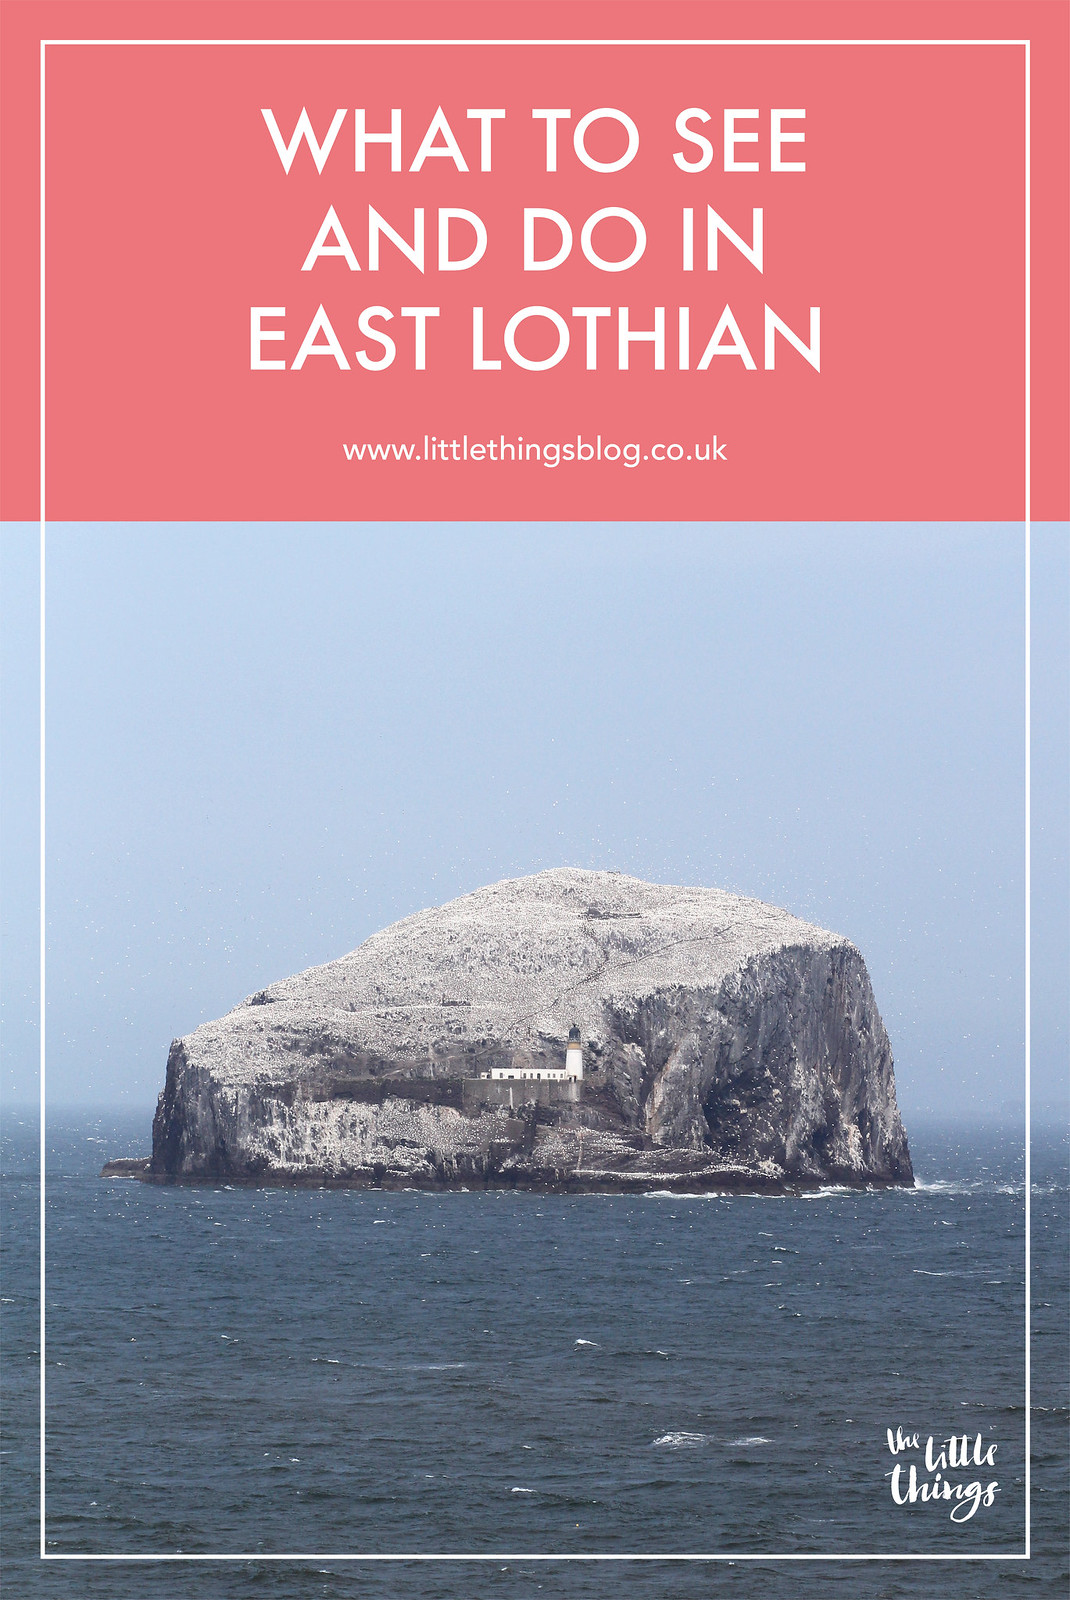 What to see and do in East Lothian Edinburgh Scotland UK